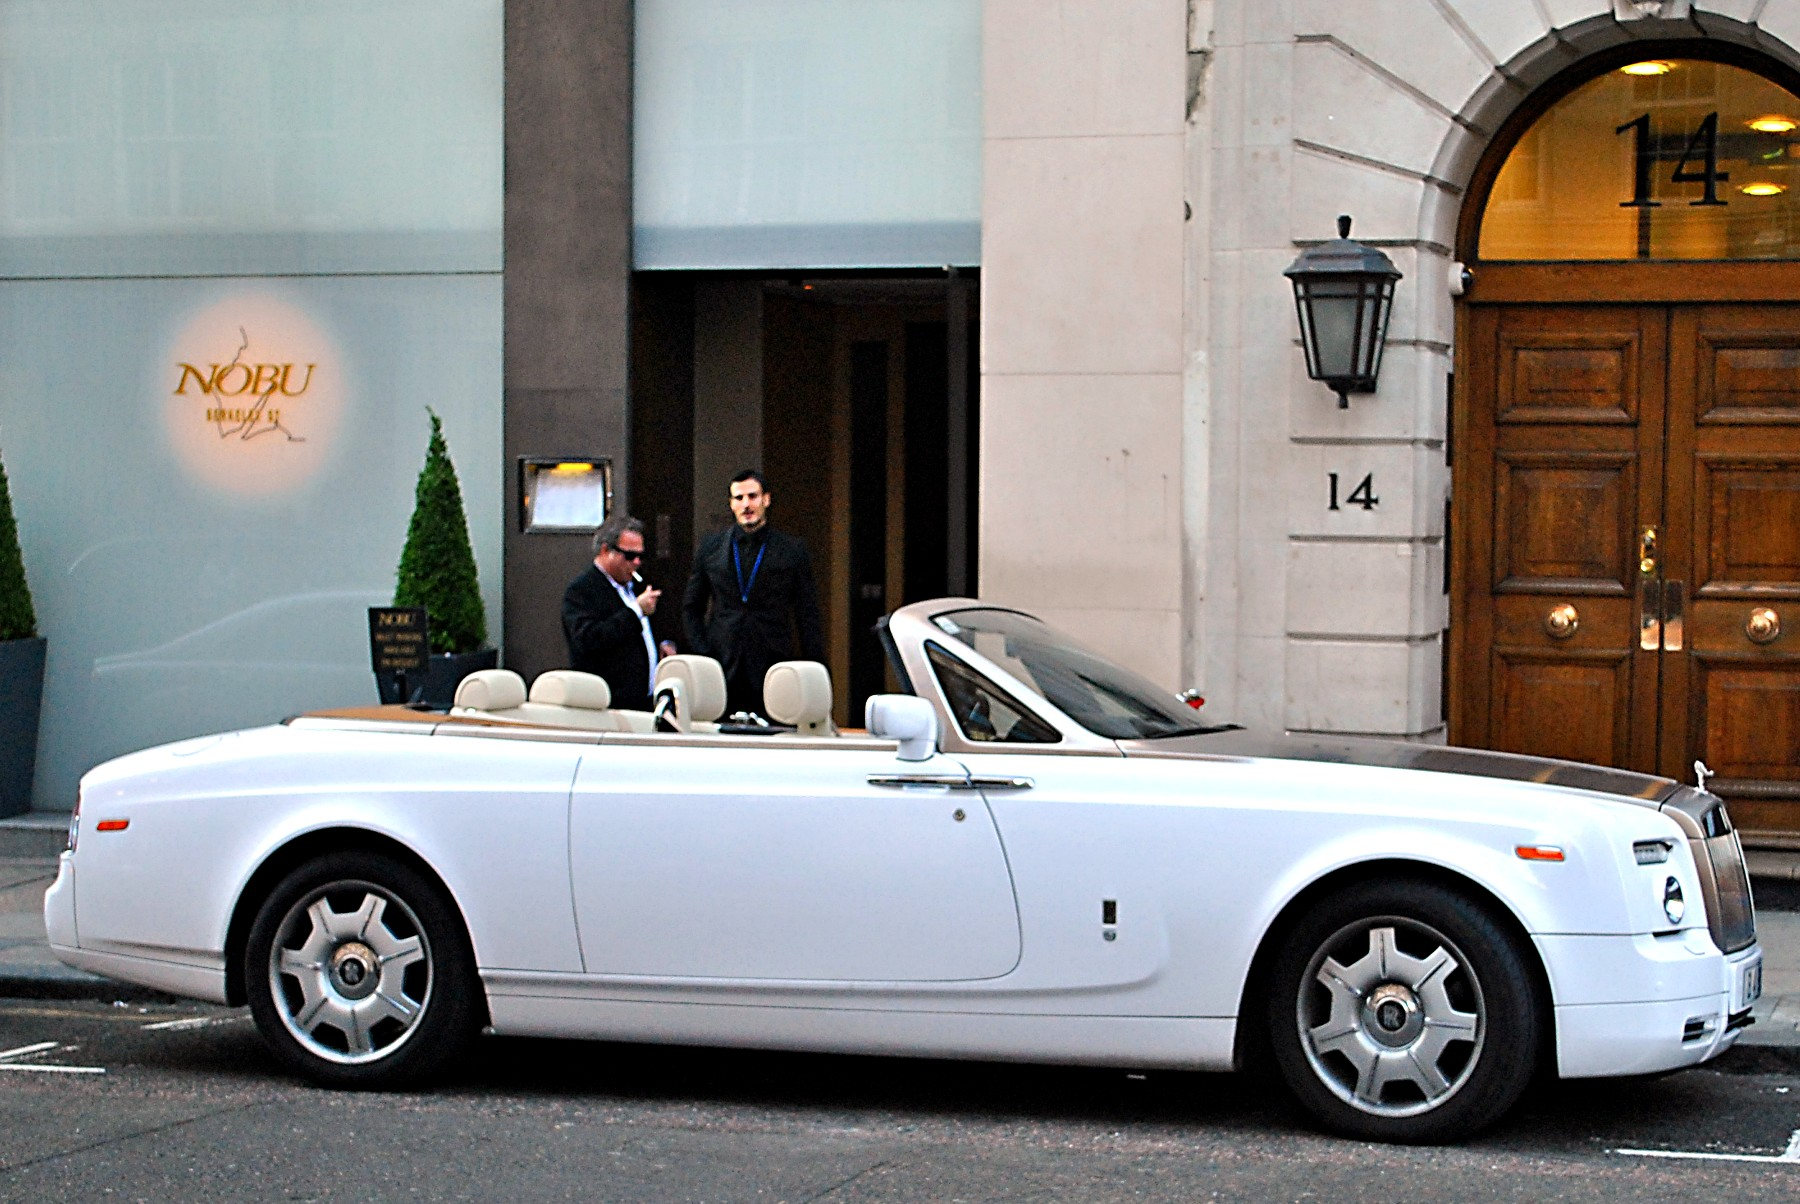 2008 Rolls royce Phantom Drophead Coupe #11